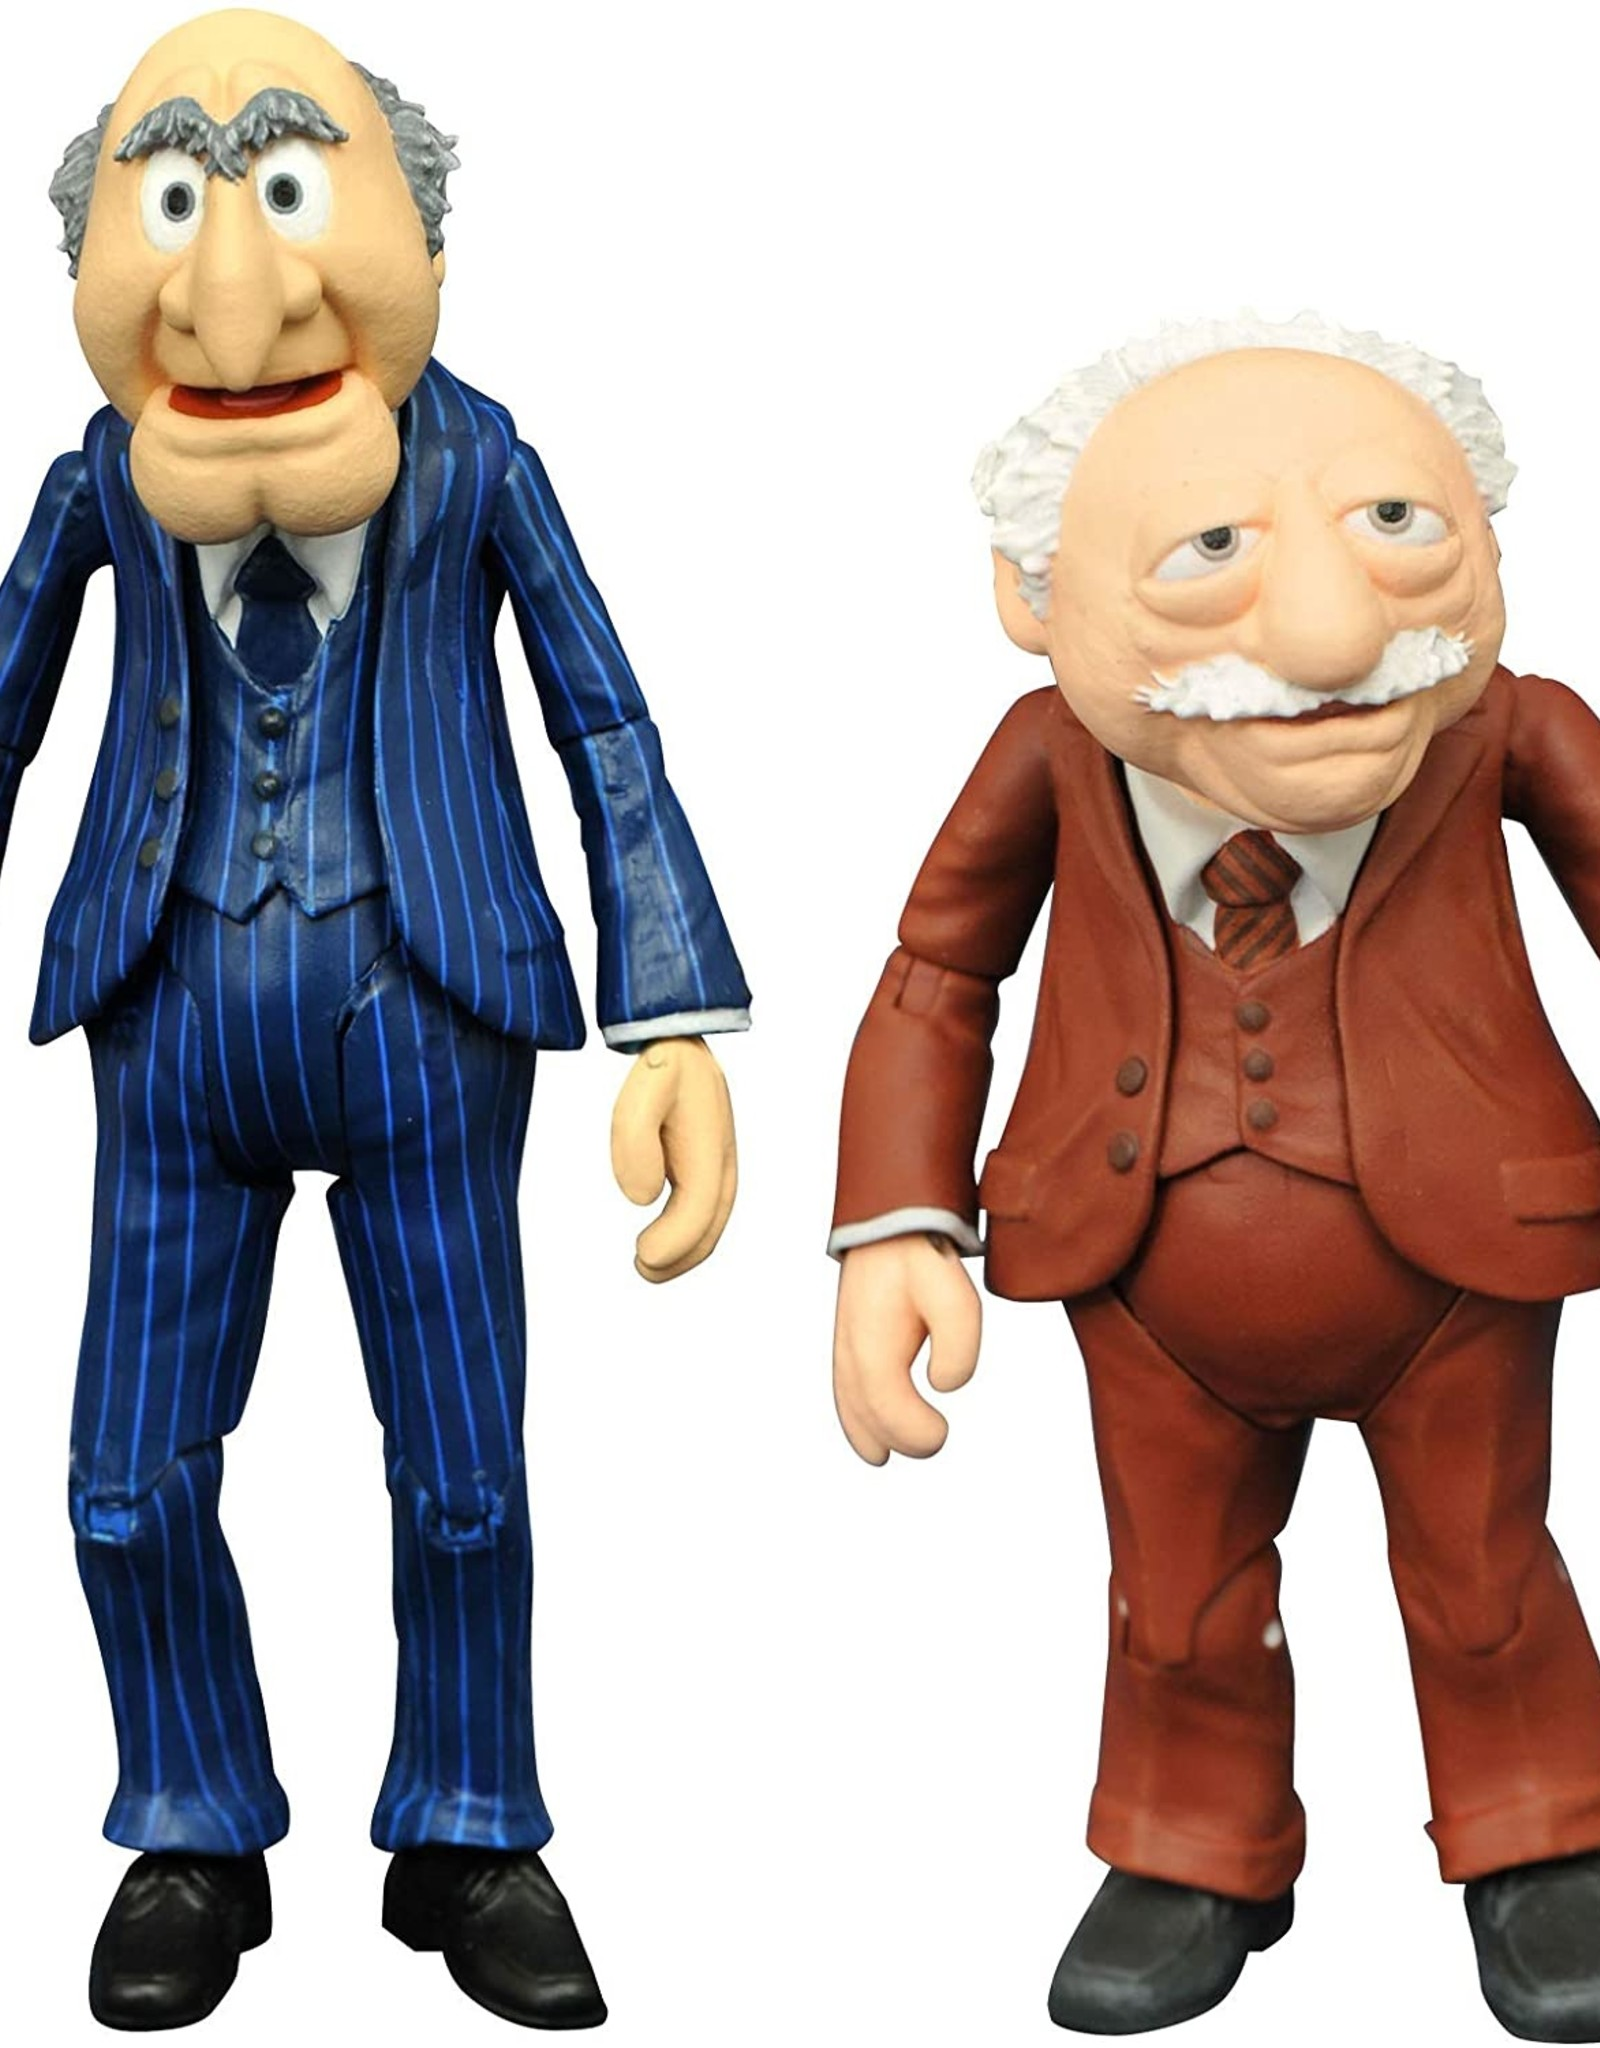 Diamond Select Toys Best of Muppets: Statler and Waldorf (2021)